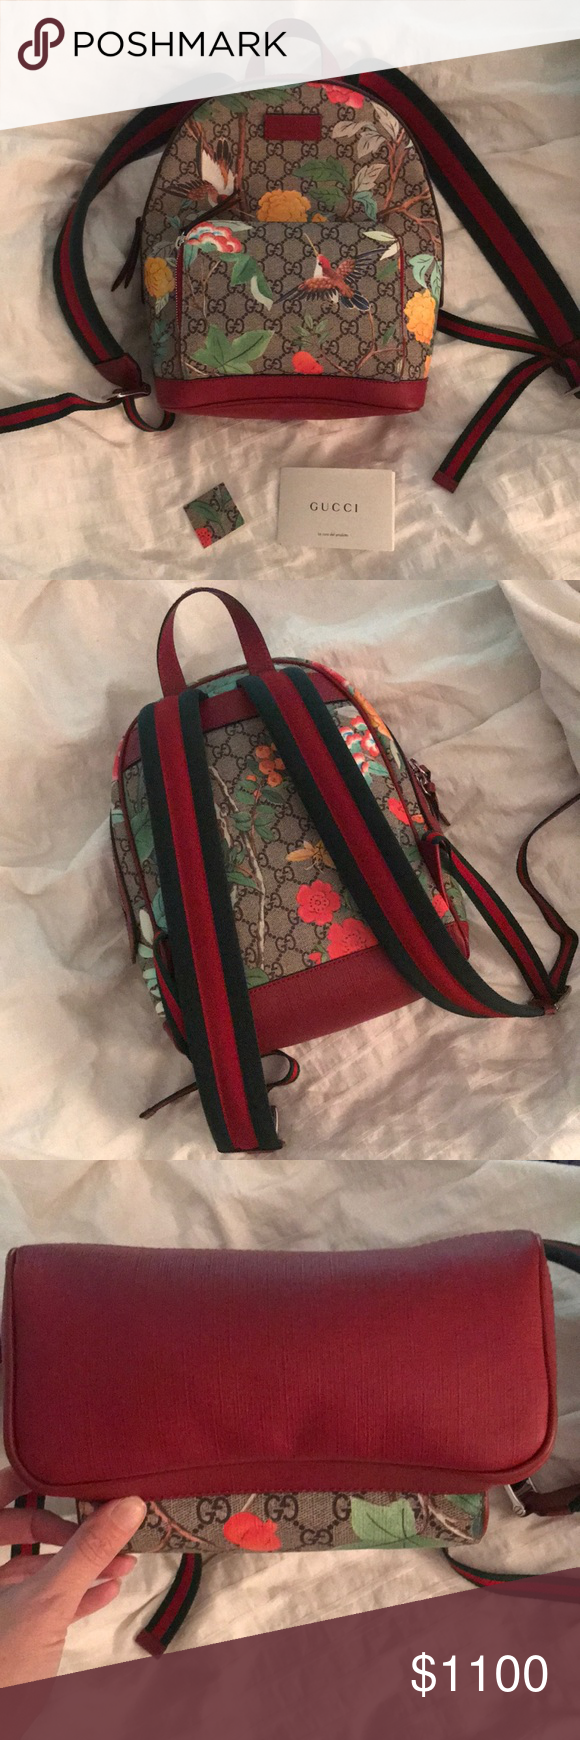 3e298810497 Gucci Tian GG Supreme Backpack Style 427042 K0LCN 8722 A small sized  backpack with leather